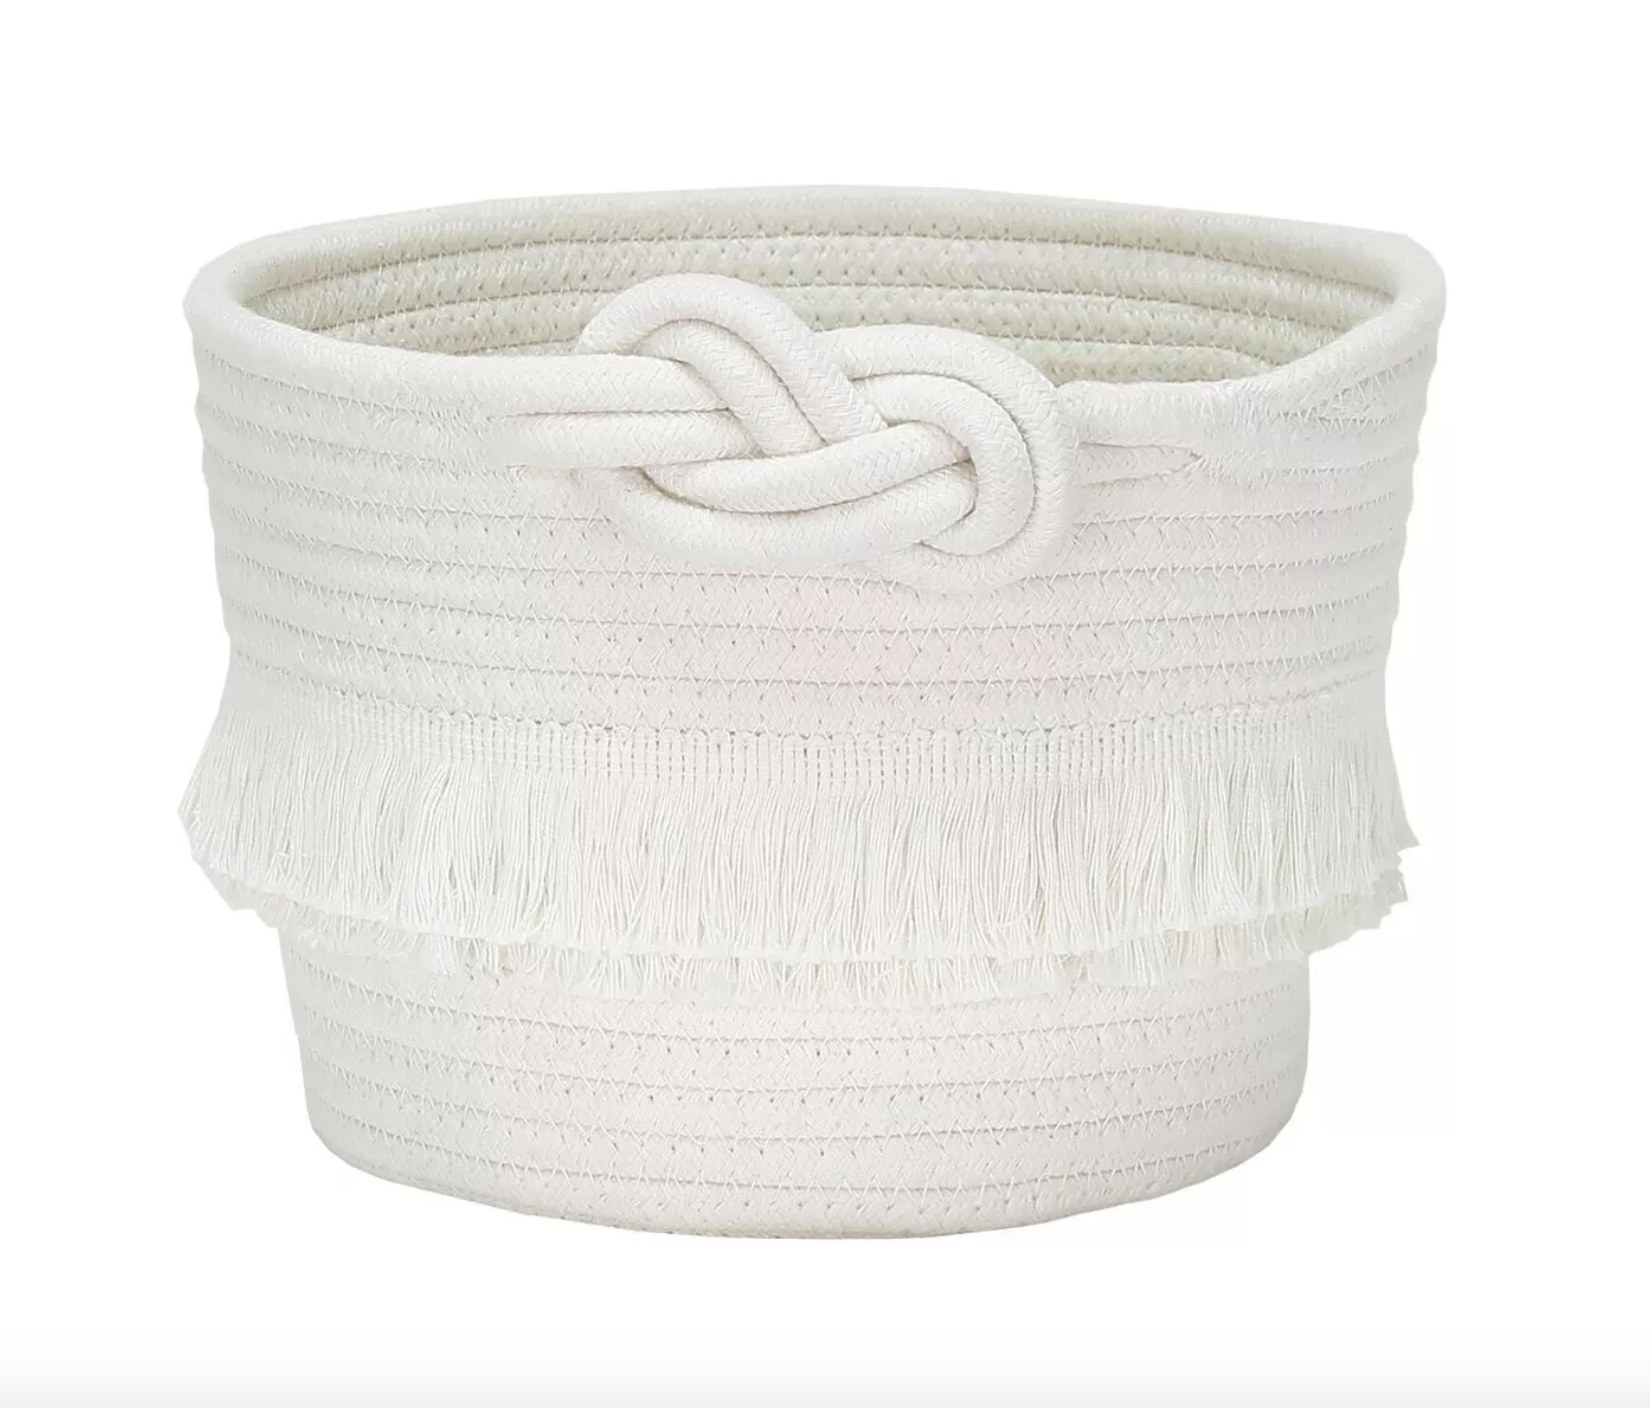 The decorative toy storage basket in white